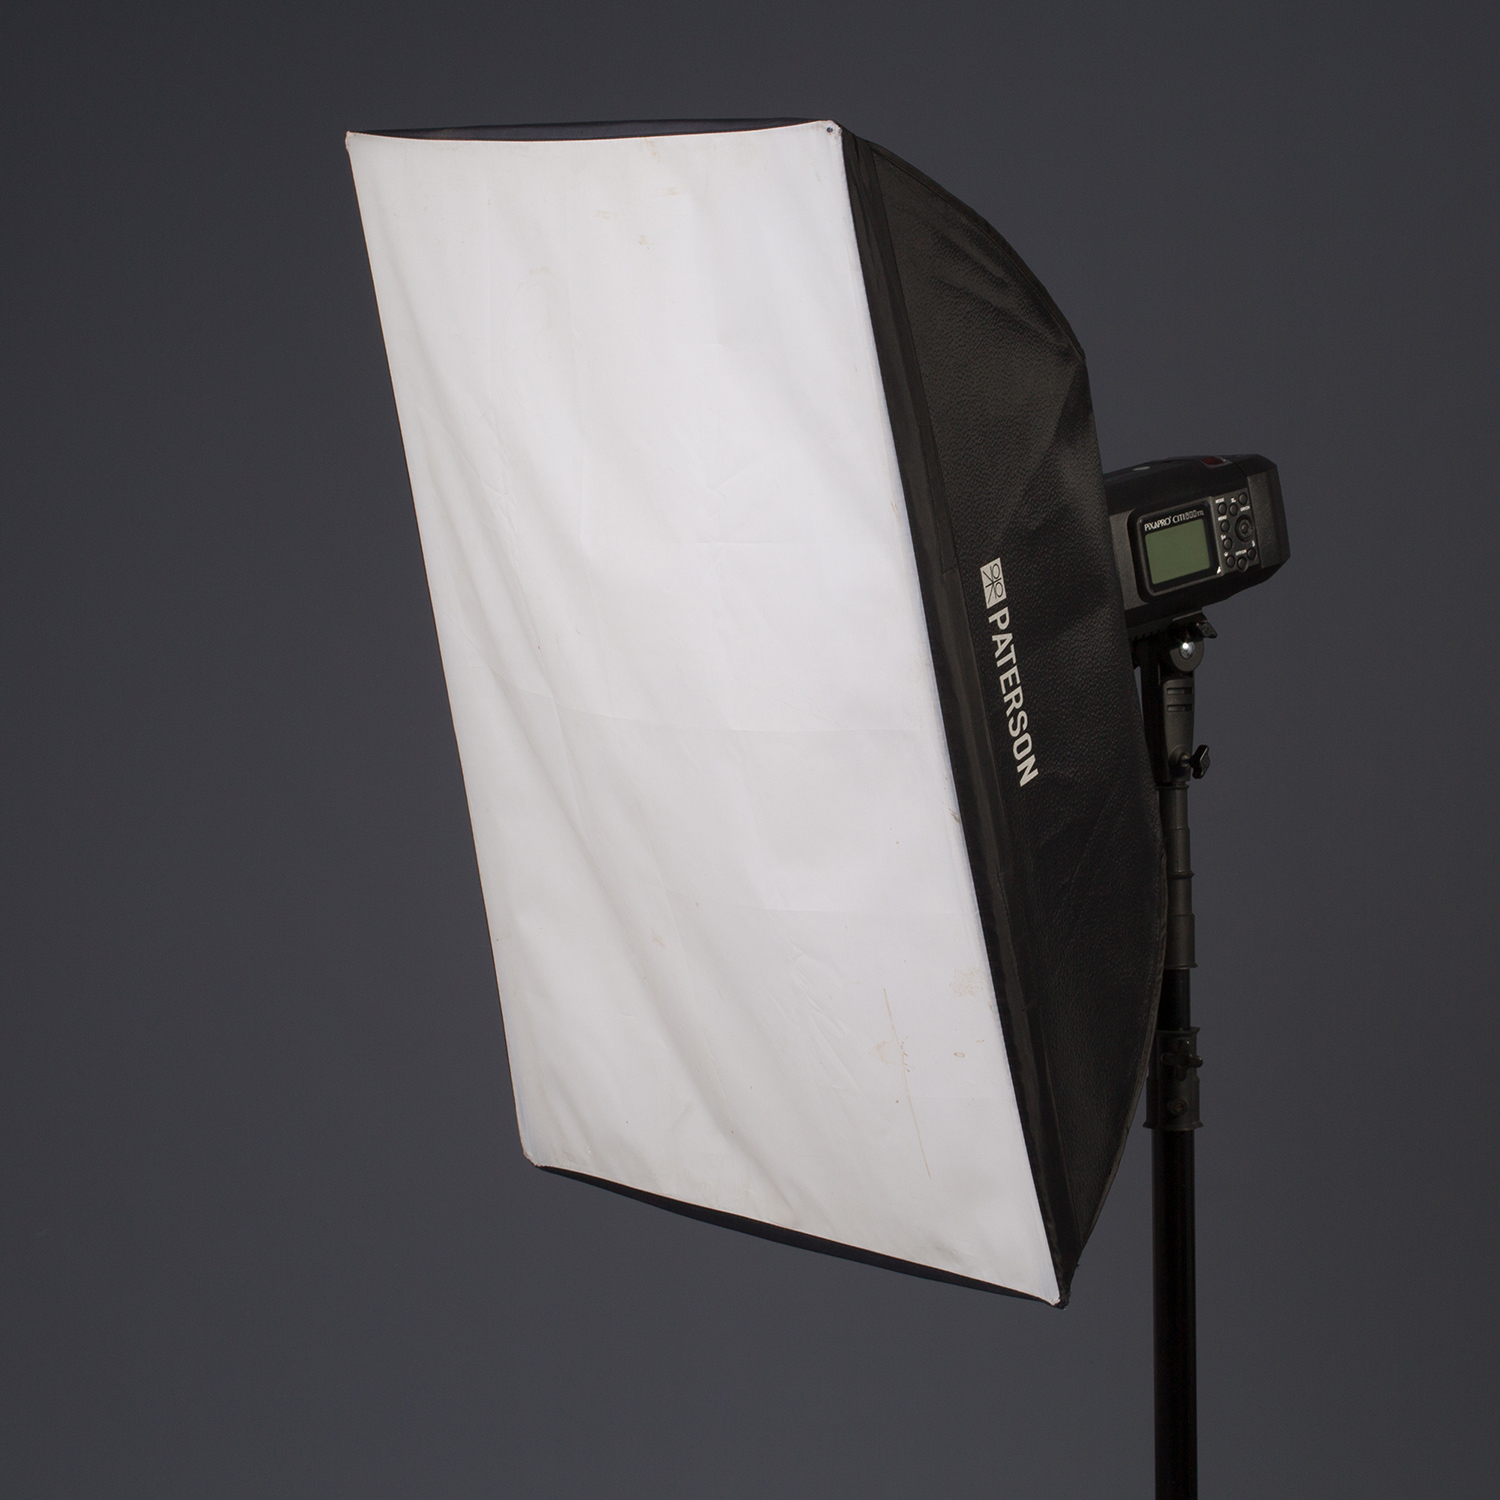 https://i0.wp.com/digital-photography-school.com/wp-content/uploads/2018/09/for-the-love-of-softboxes-softbox.jpg?resize=1500%2C1500&ssl=1